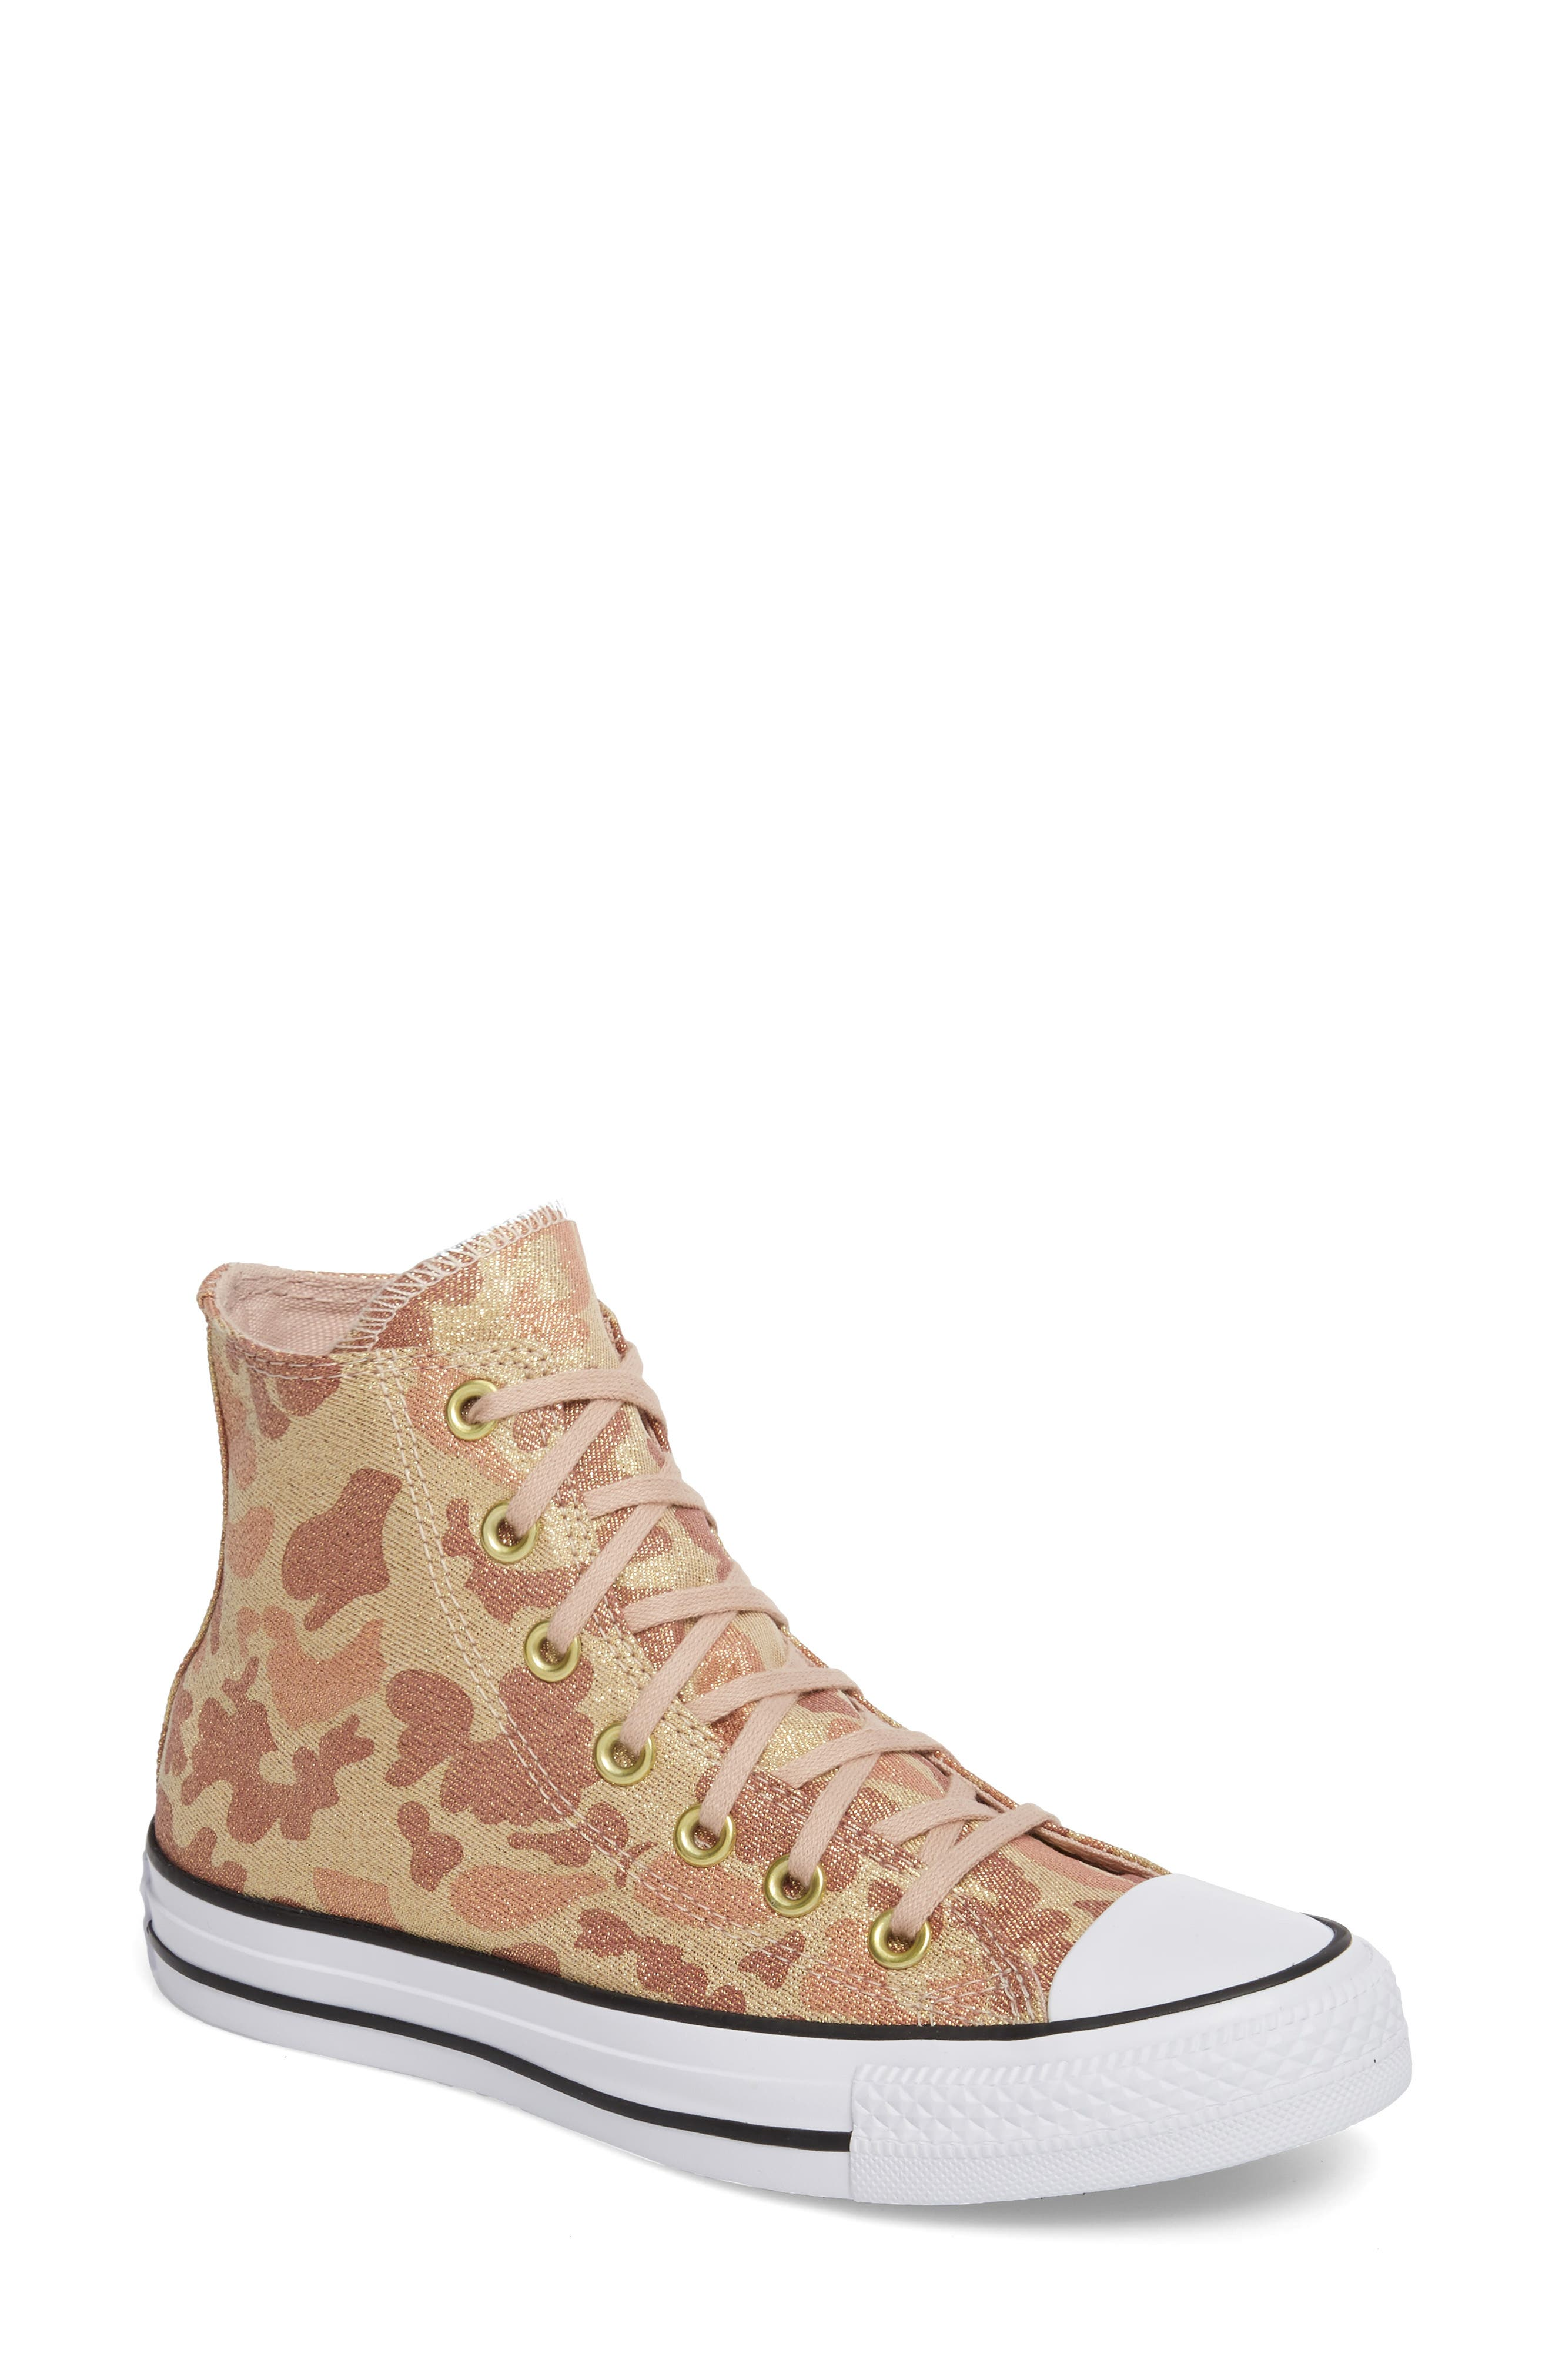 Chuck Taylor<sup>®</sup> All Star<sup>®</sup> High Top Sneaker,                         Main,                         color, 264